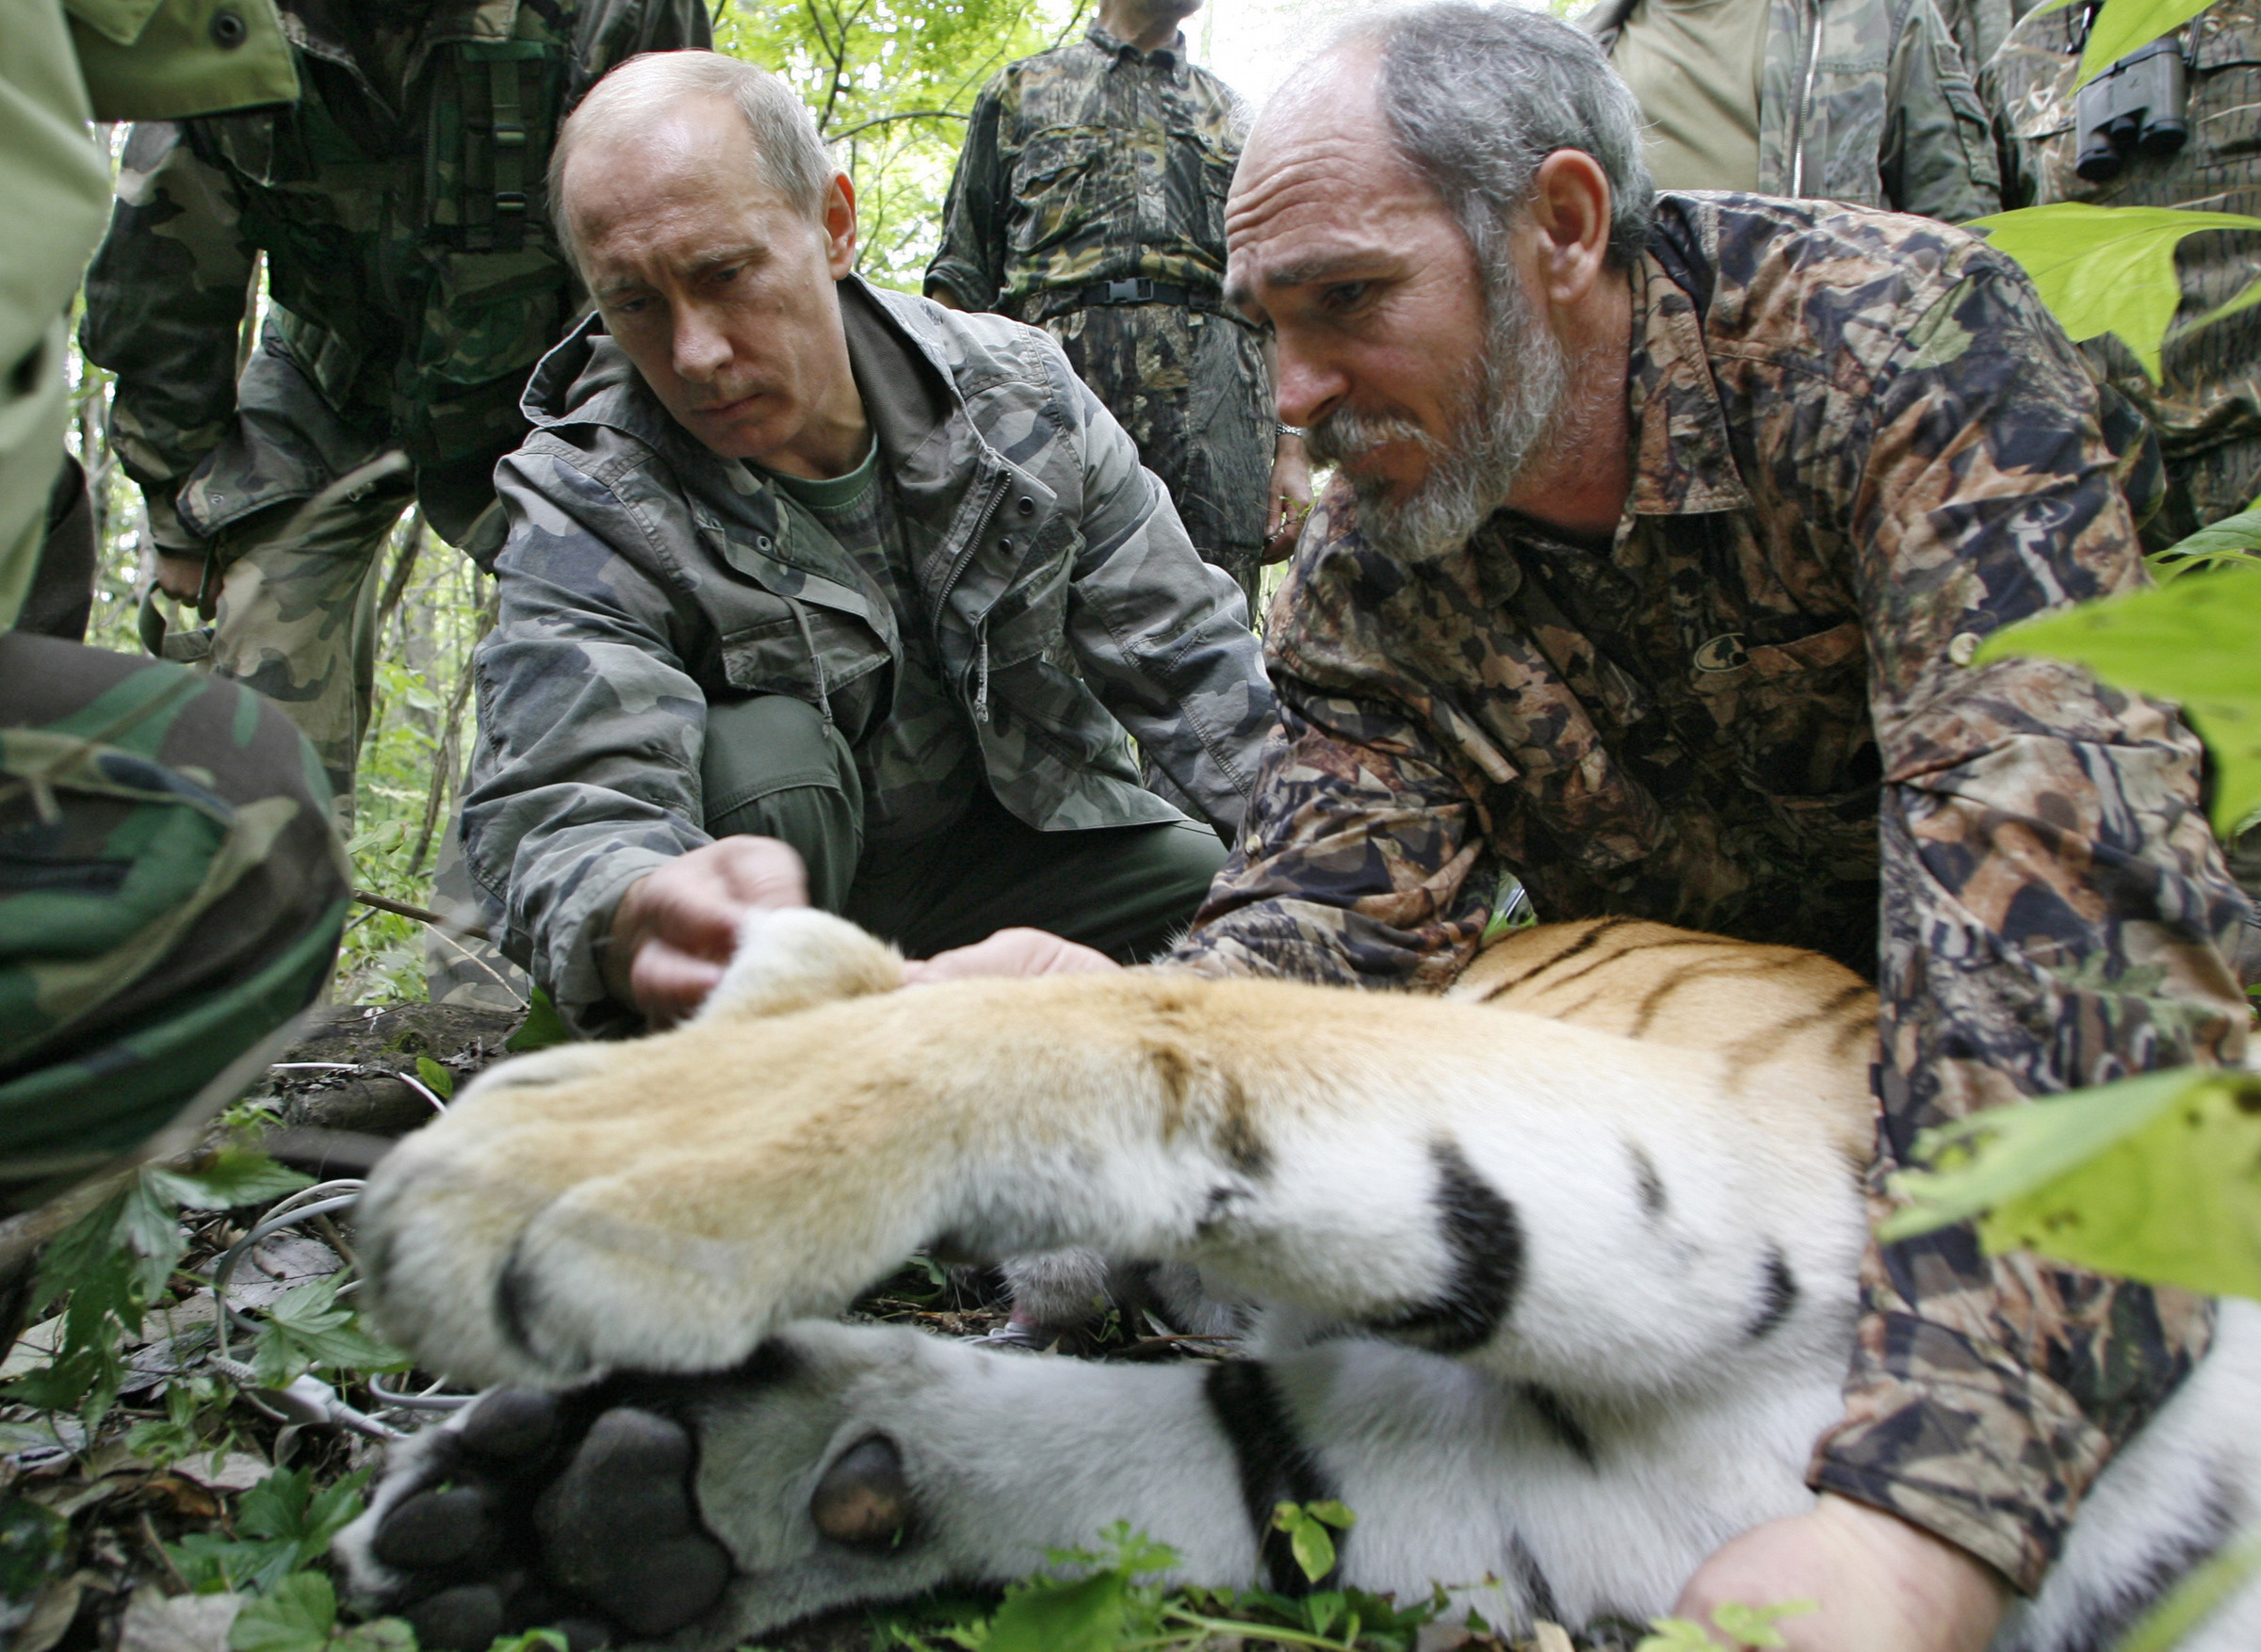 Prime Minister Vladimir Putin, left, looks at the tranquilized five-year-old Ussuri tiger as researchers put a collar with a satellite tracker on the animal in a Russian Academy of Sciences reserve in Russia's Far East on Aug. 31, 2008.